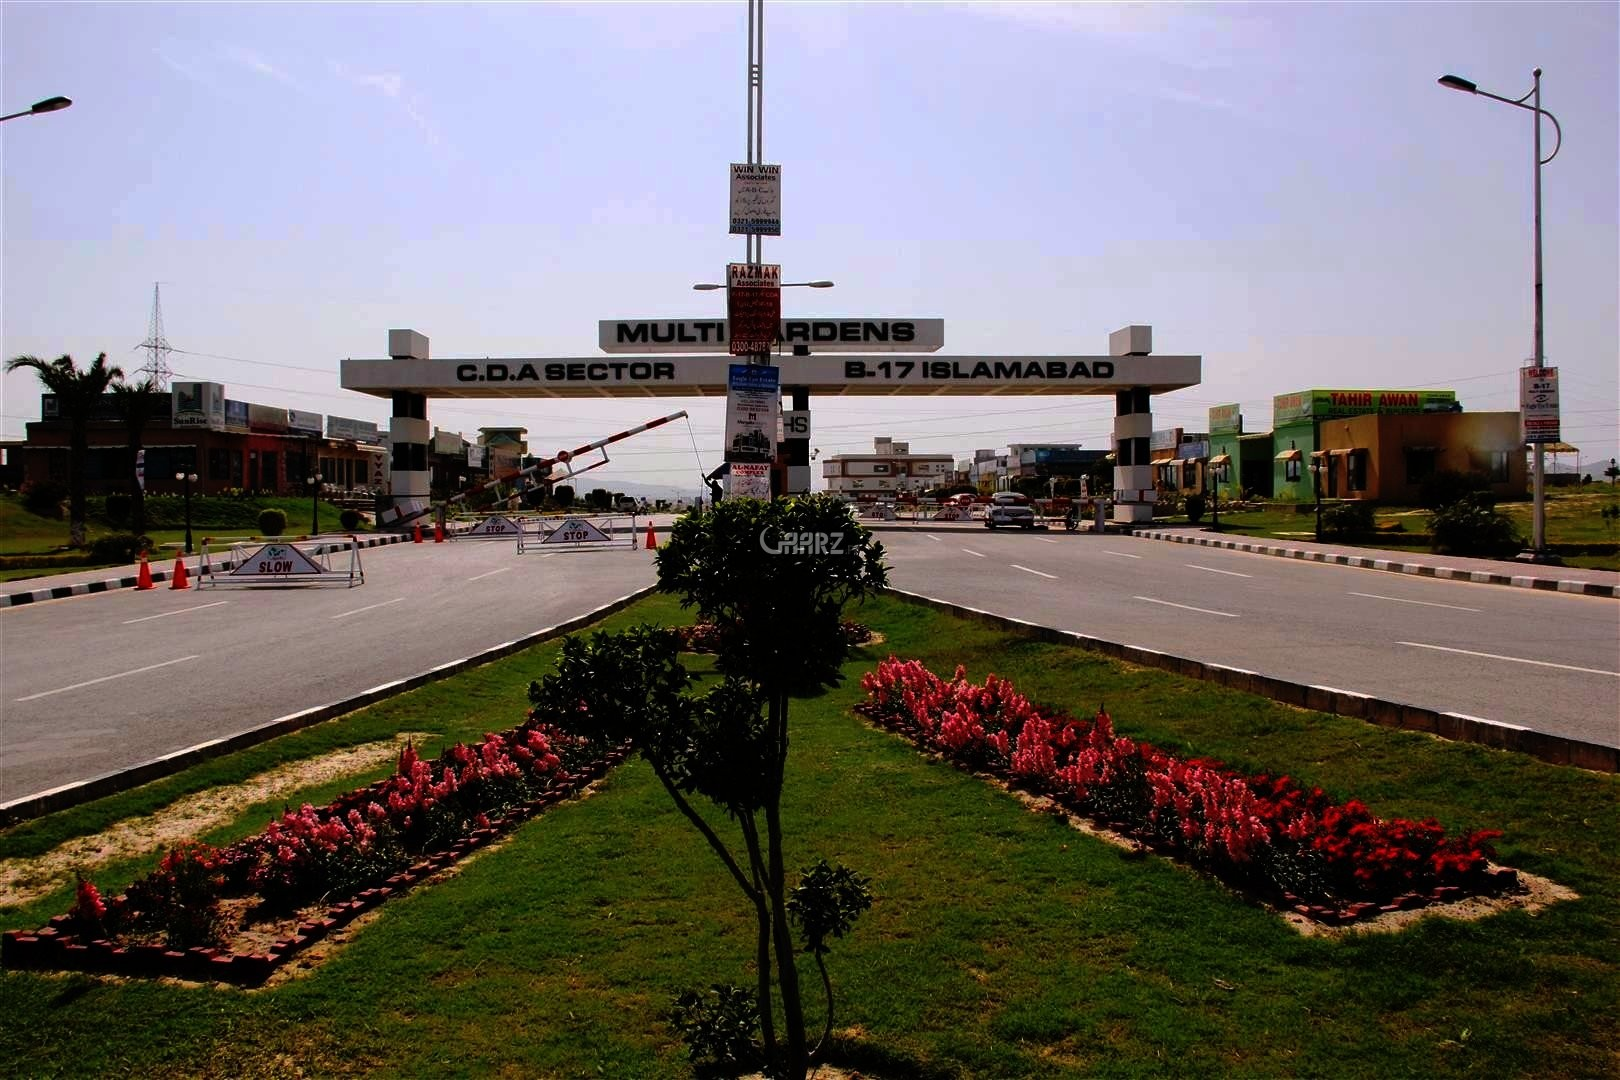 10.88 Marla Plot For Sale In B-17, Islamabad